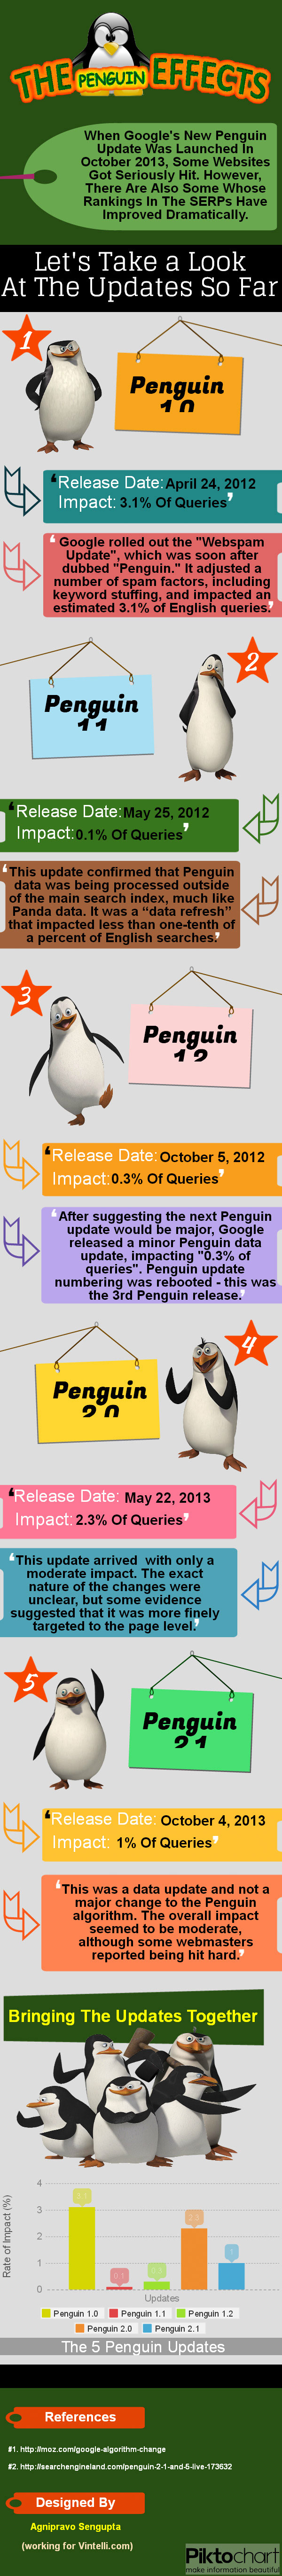 Google Penguin Effects-Infographic